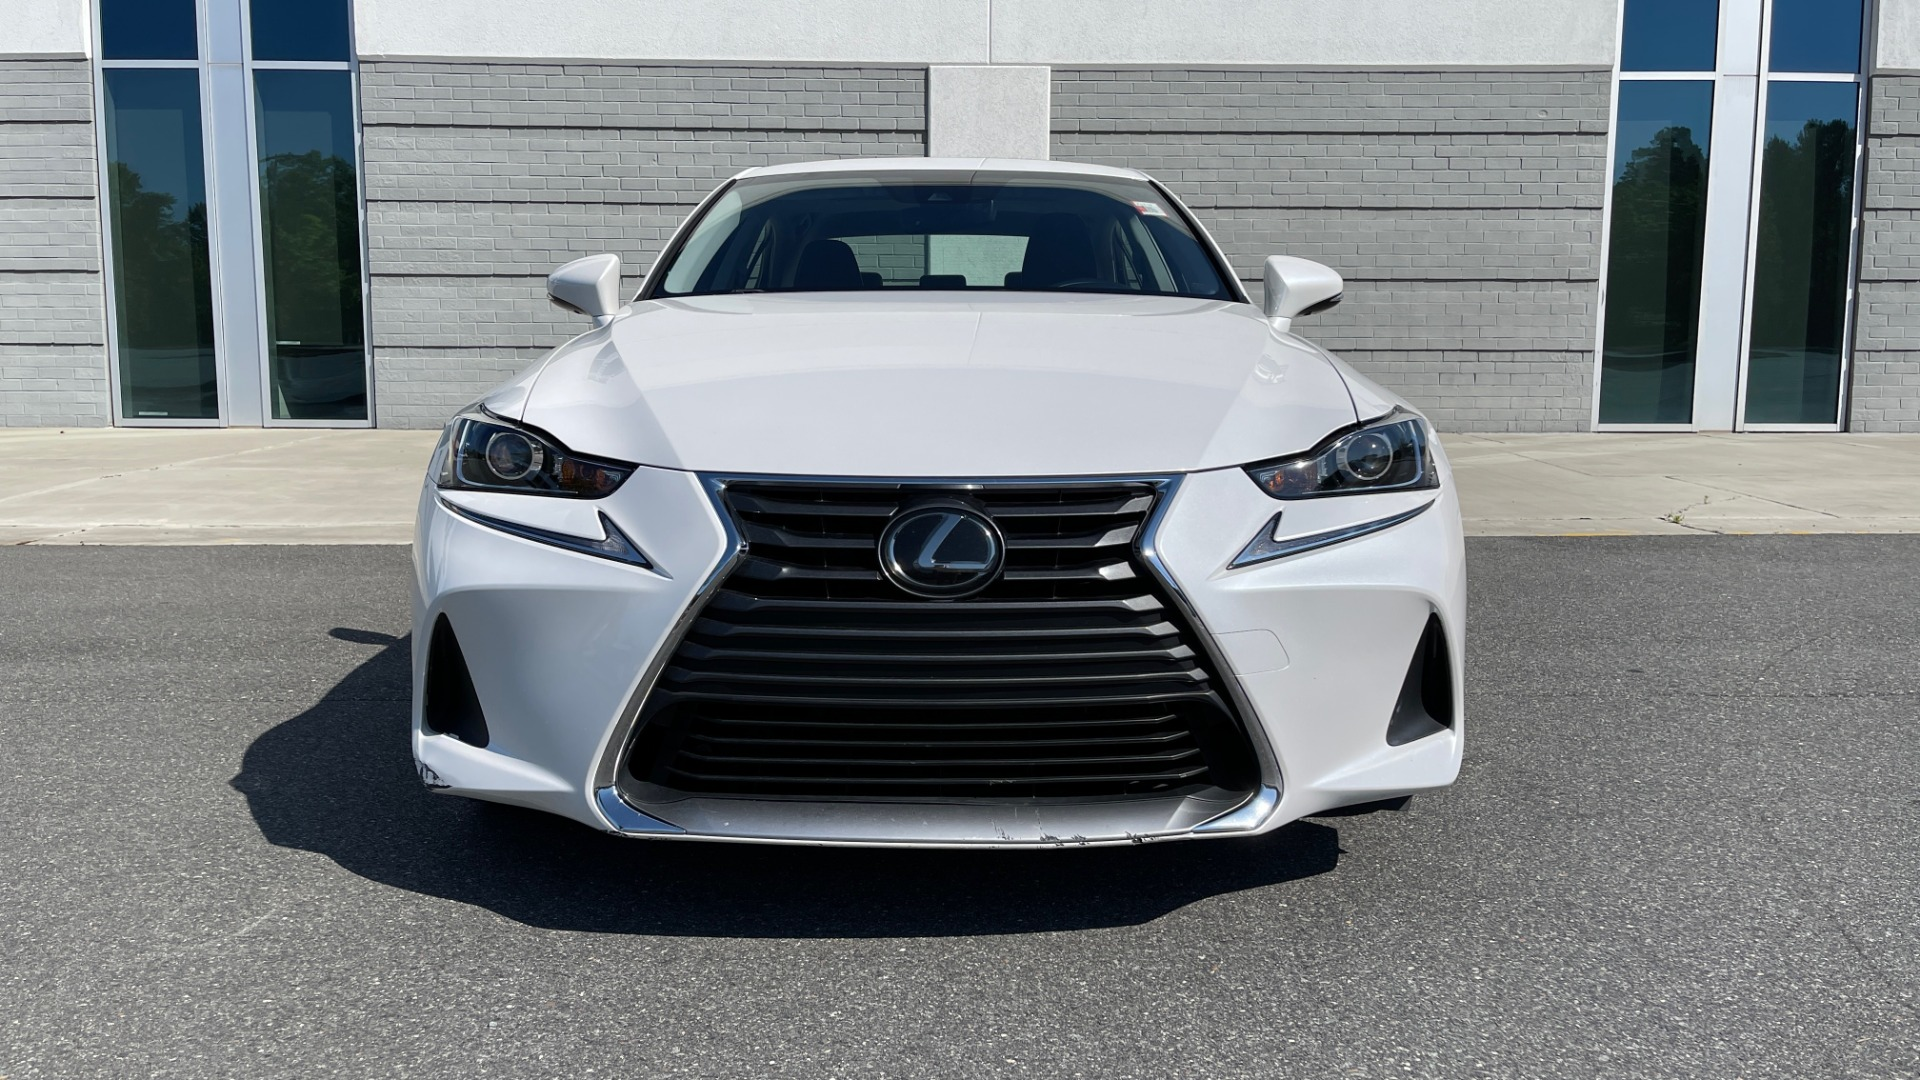 Used 2018 Lexus IS 300 / 2.0L TURBO / 8-SPD AUTO / SUNROOF / REARVIEW for sale $29,495 at Formula Imports in Charlotte NC 28227 13